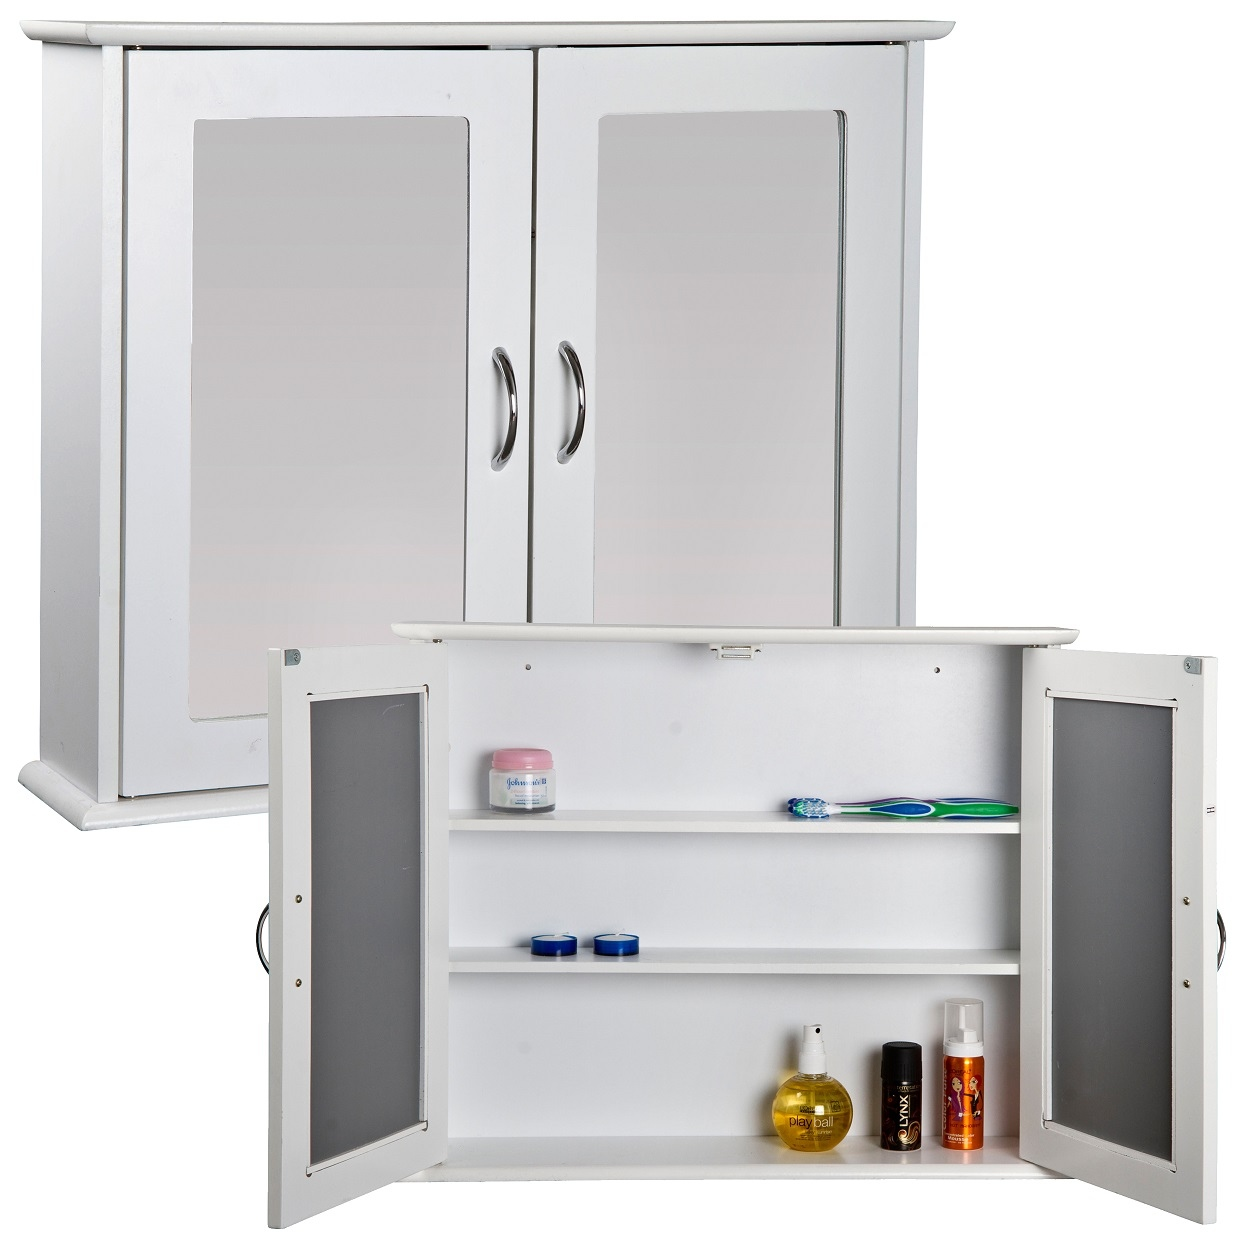 Bathroom Mirrored Cabinets White Mirrored Double Door Bathroom Cabinet Storage